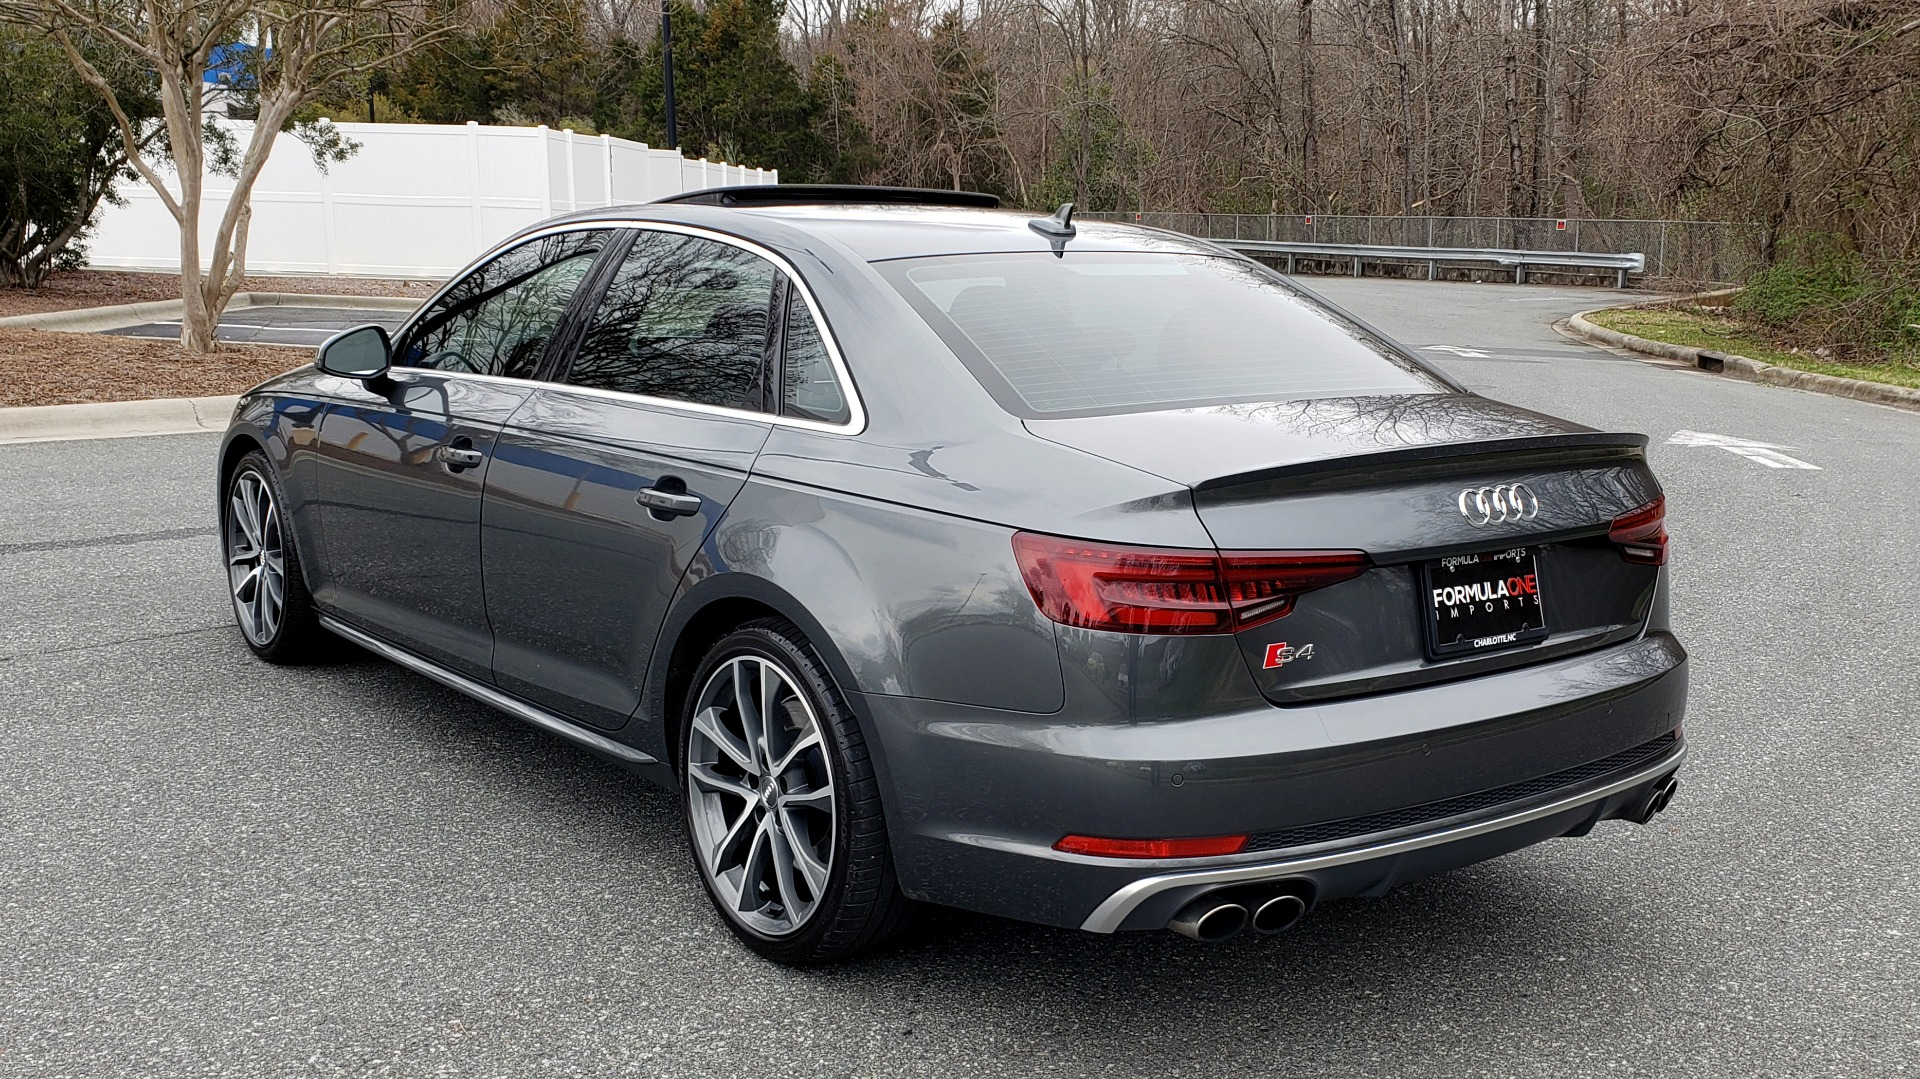 Used 2019 Audi S4 PREMIUM PLUS / AWD / NAV / SUNROOF / B&O SOUND / REARVIEW for sale Sold at Formula Imports in Charlotte NC 28227 3